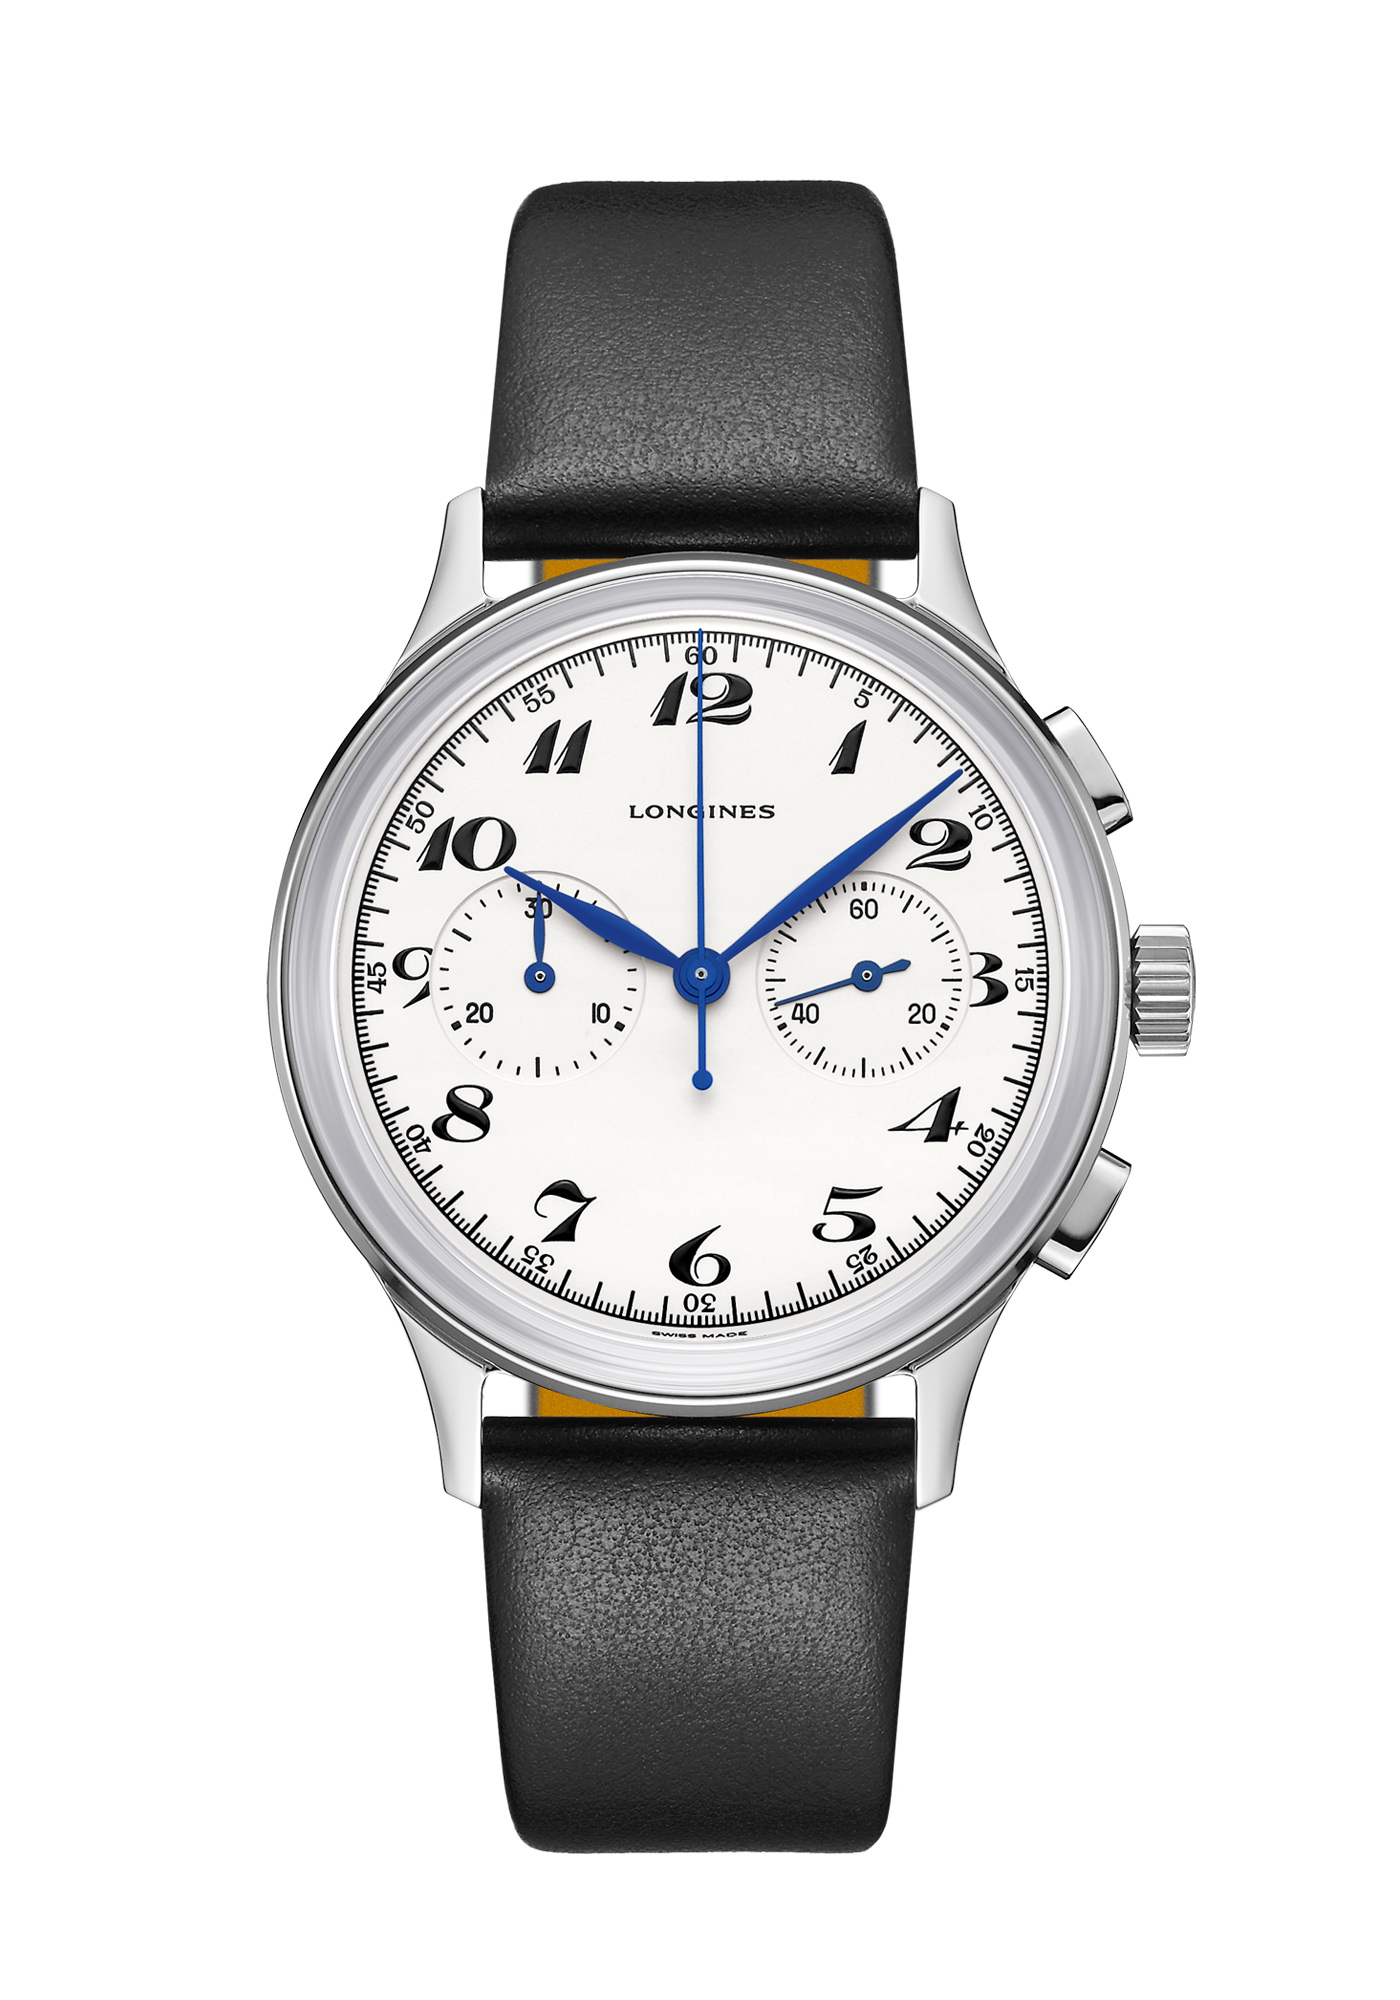 Montre Longines Collection Heritage Classic Chronograph 1946